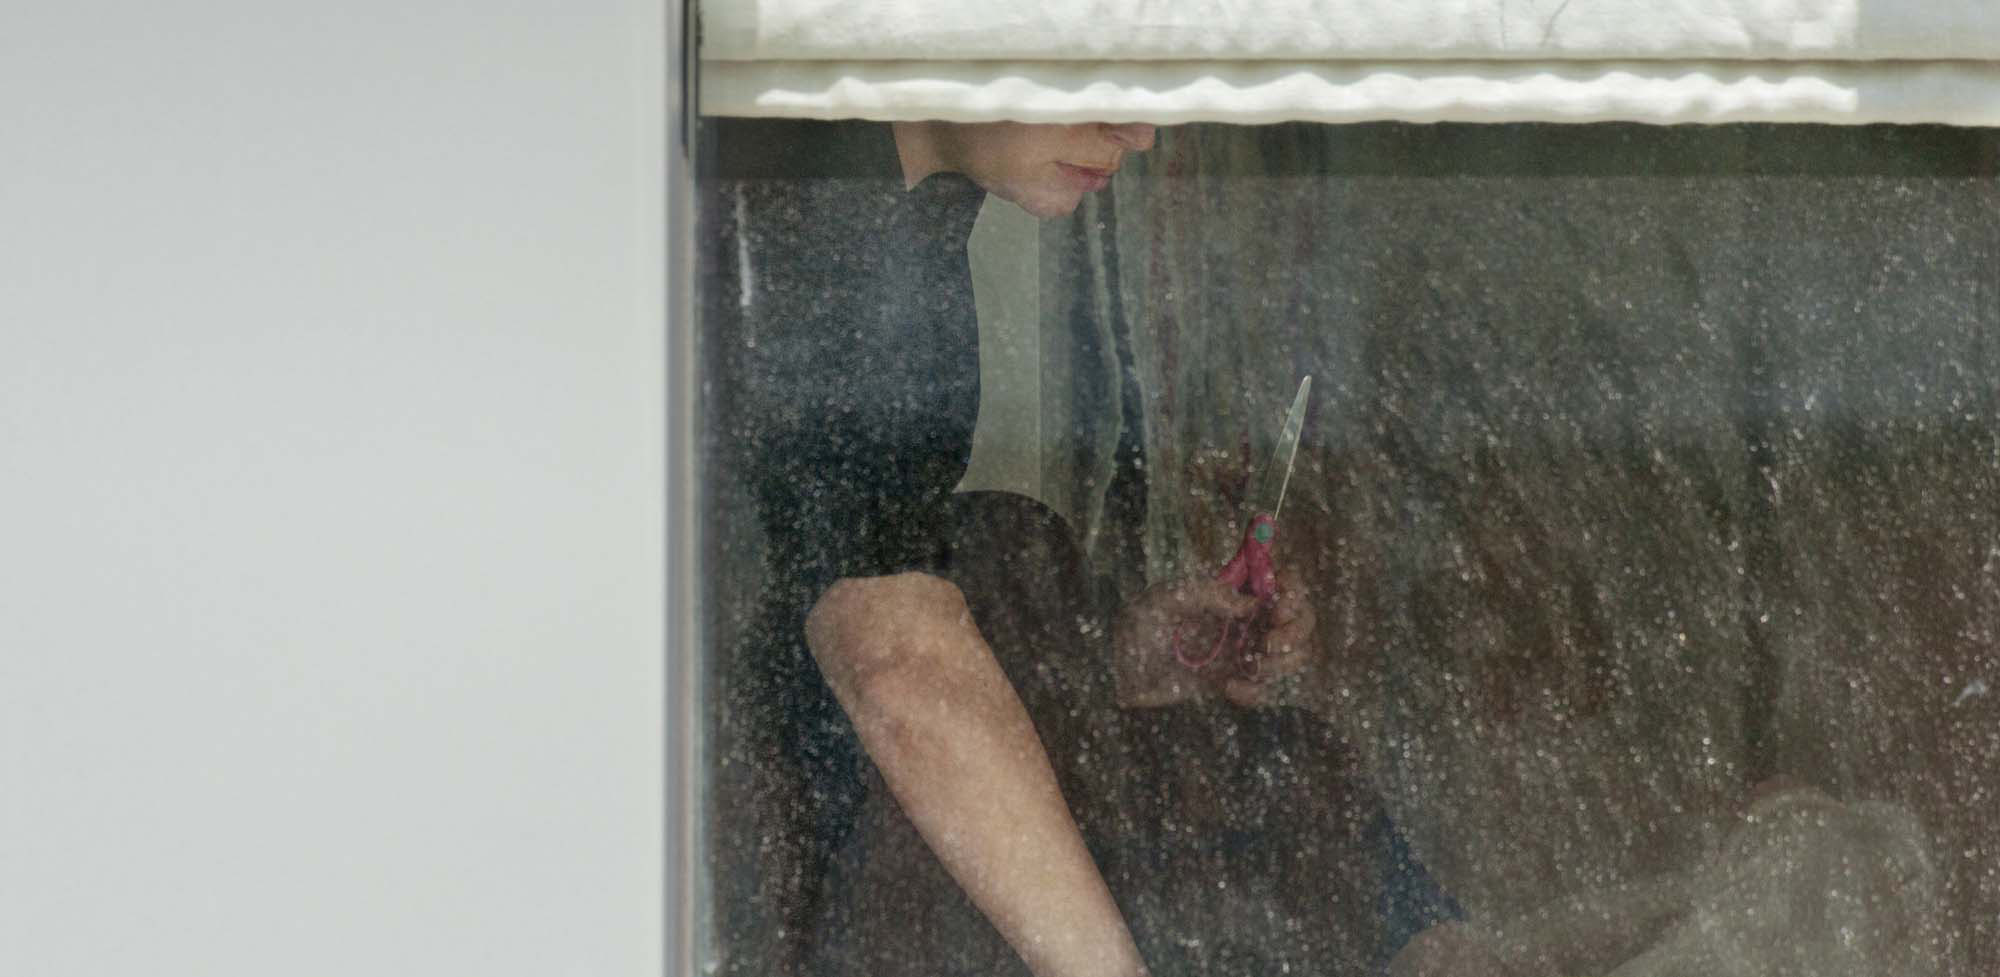 Arne Svenson,The Neighbors #3, 2012, pigment print, 28 x 57 inches